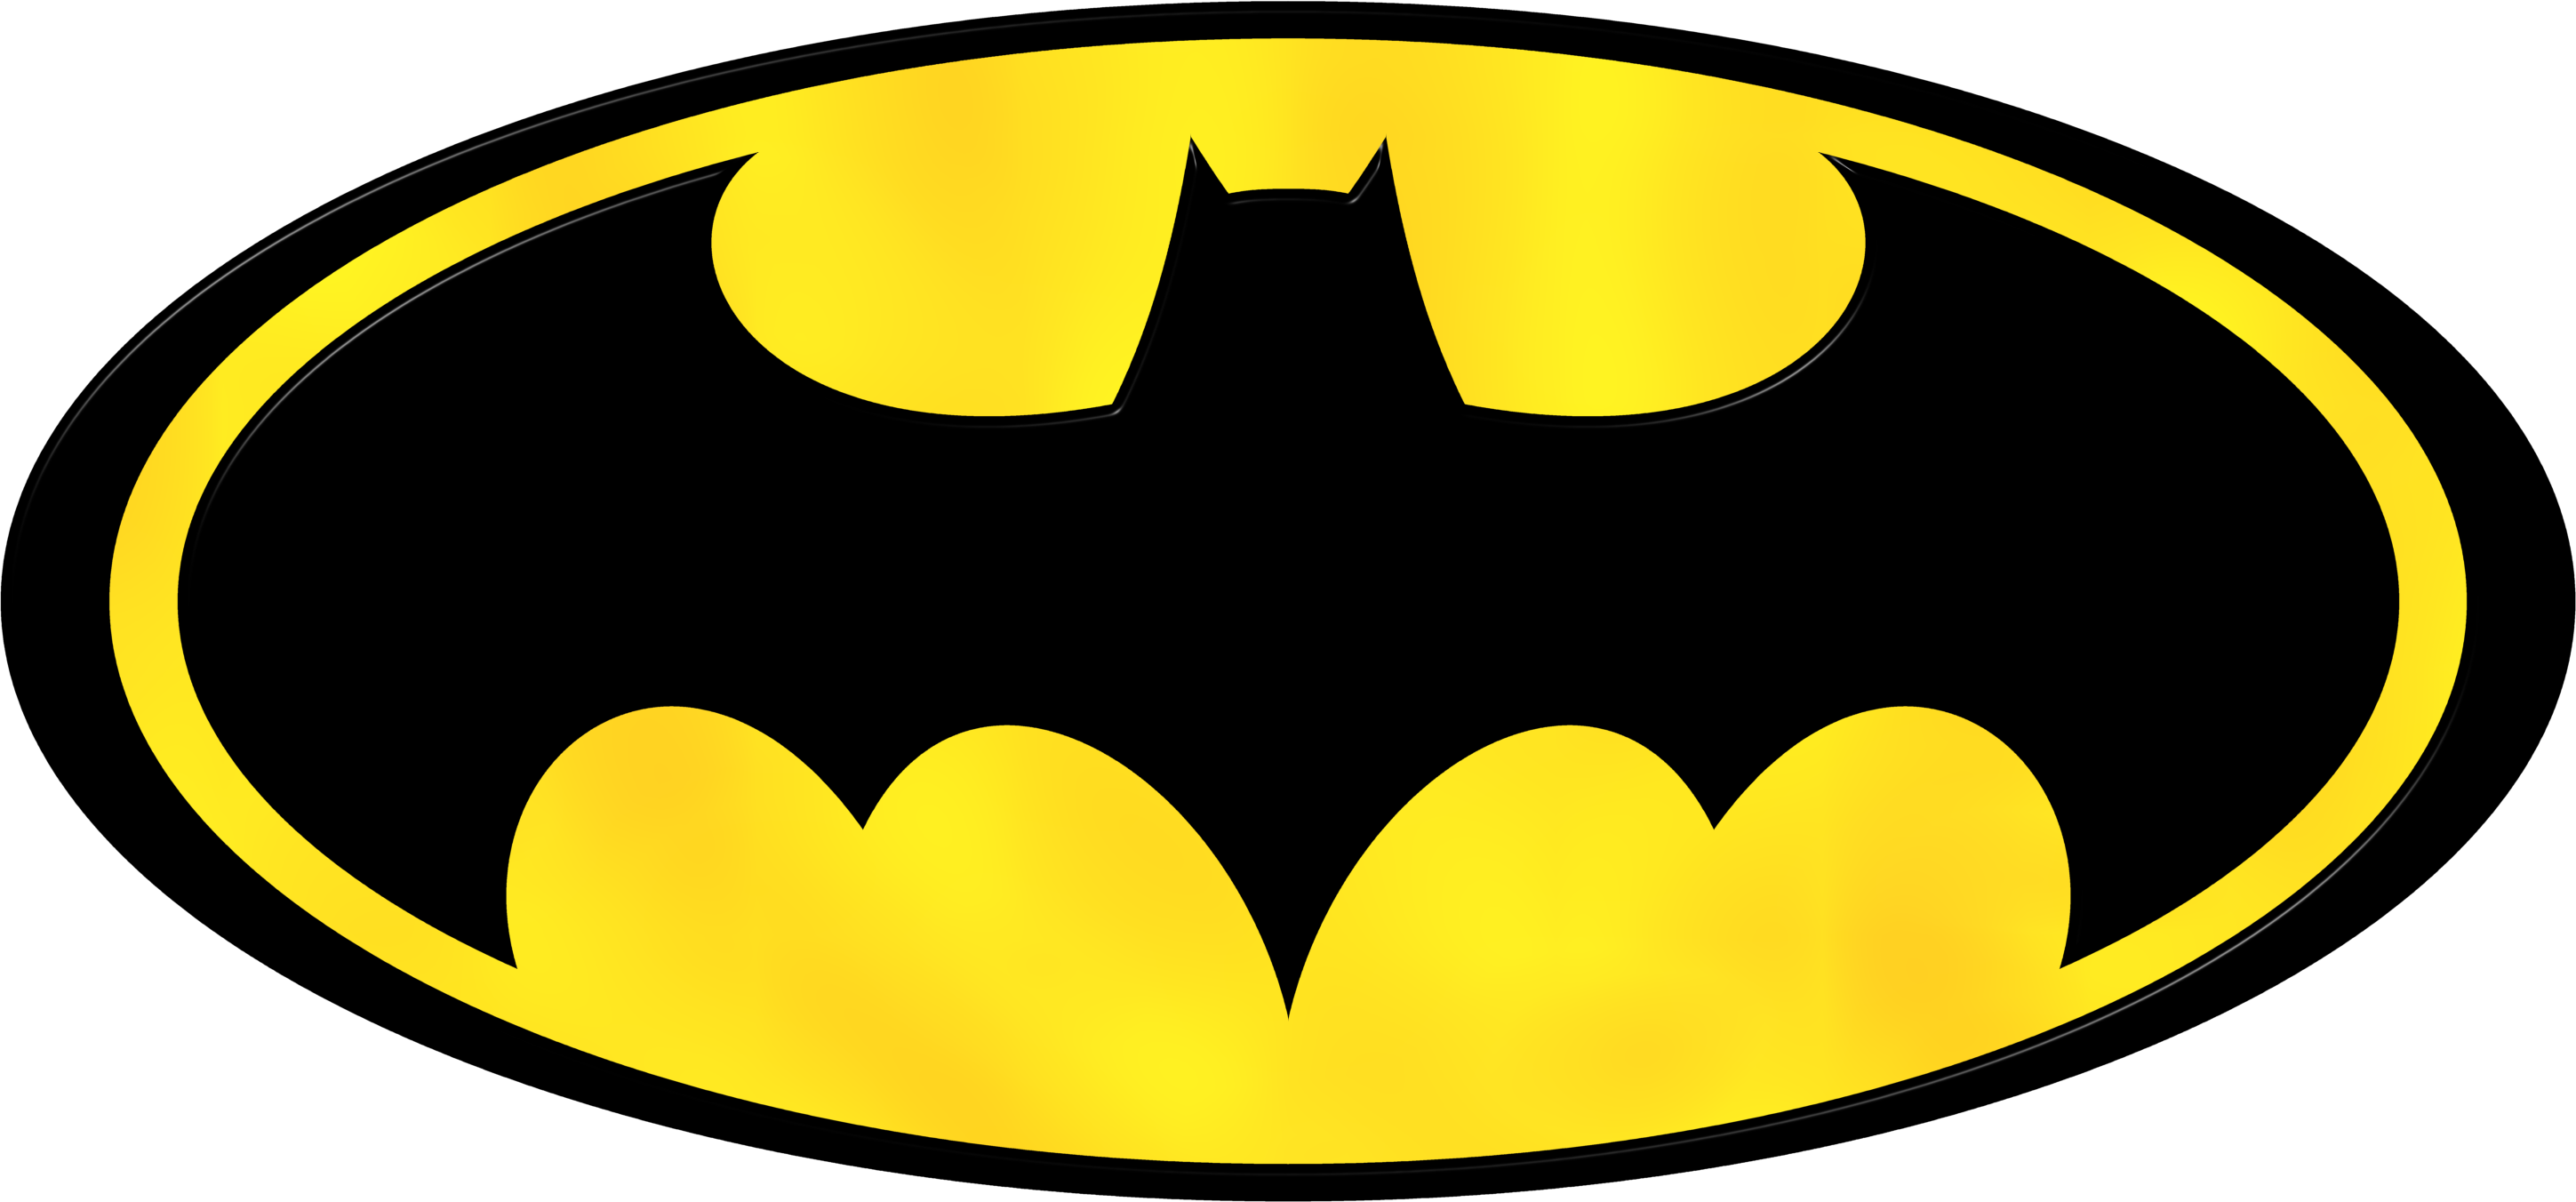 Knights (TV Series)/Characters - Batman Fanon Wiki